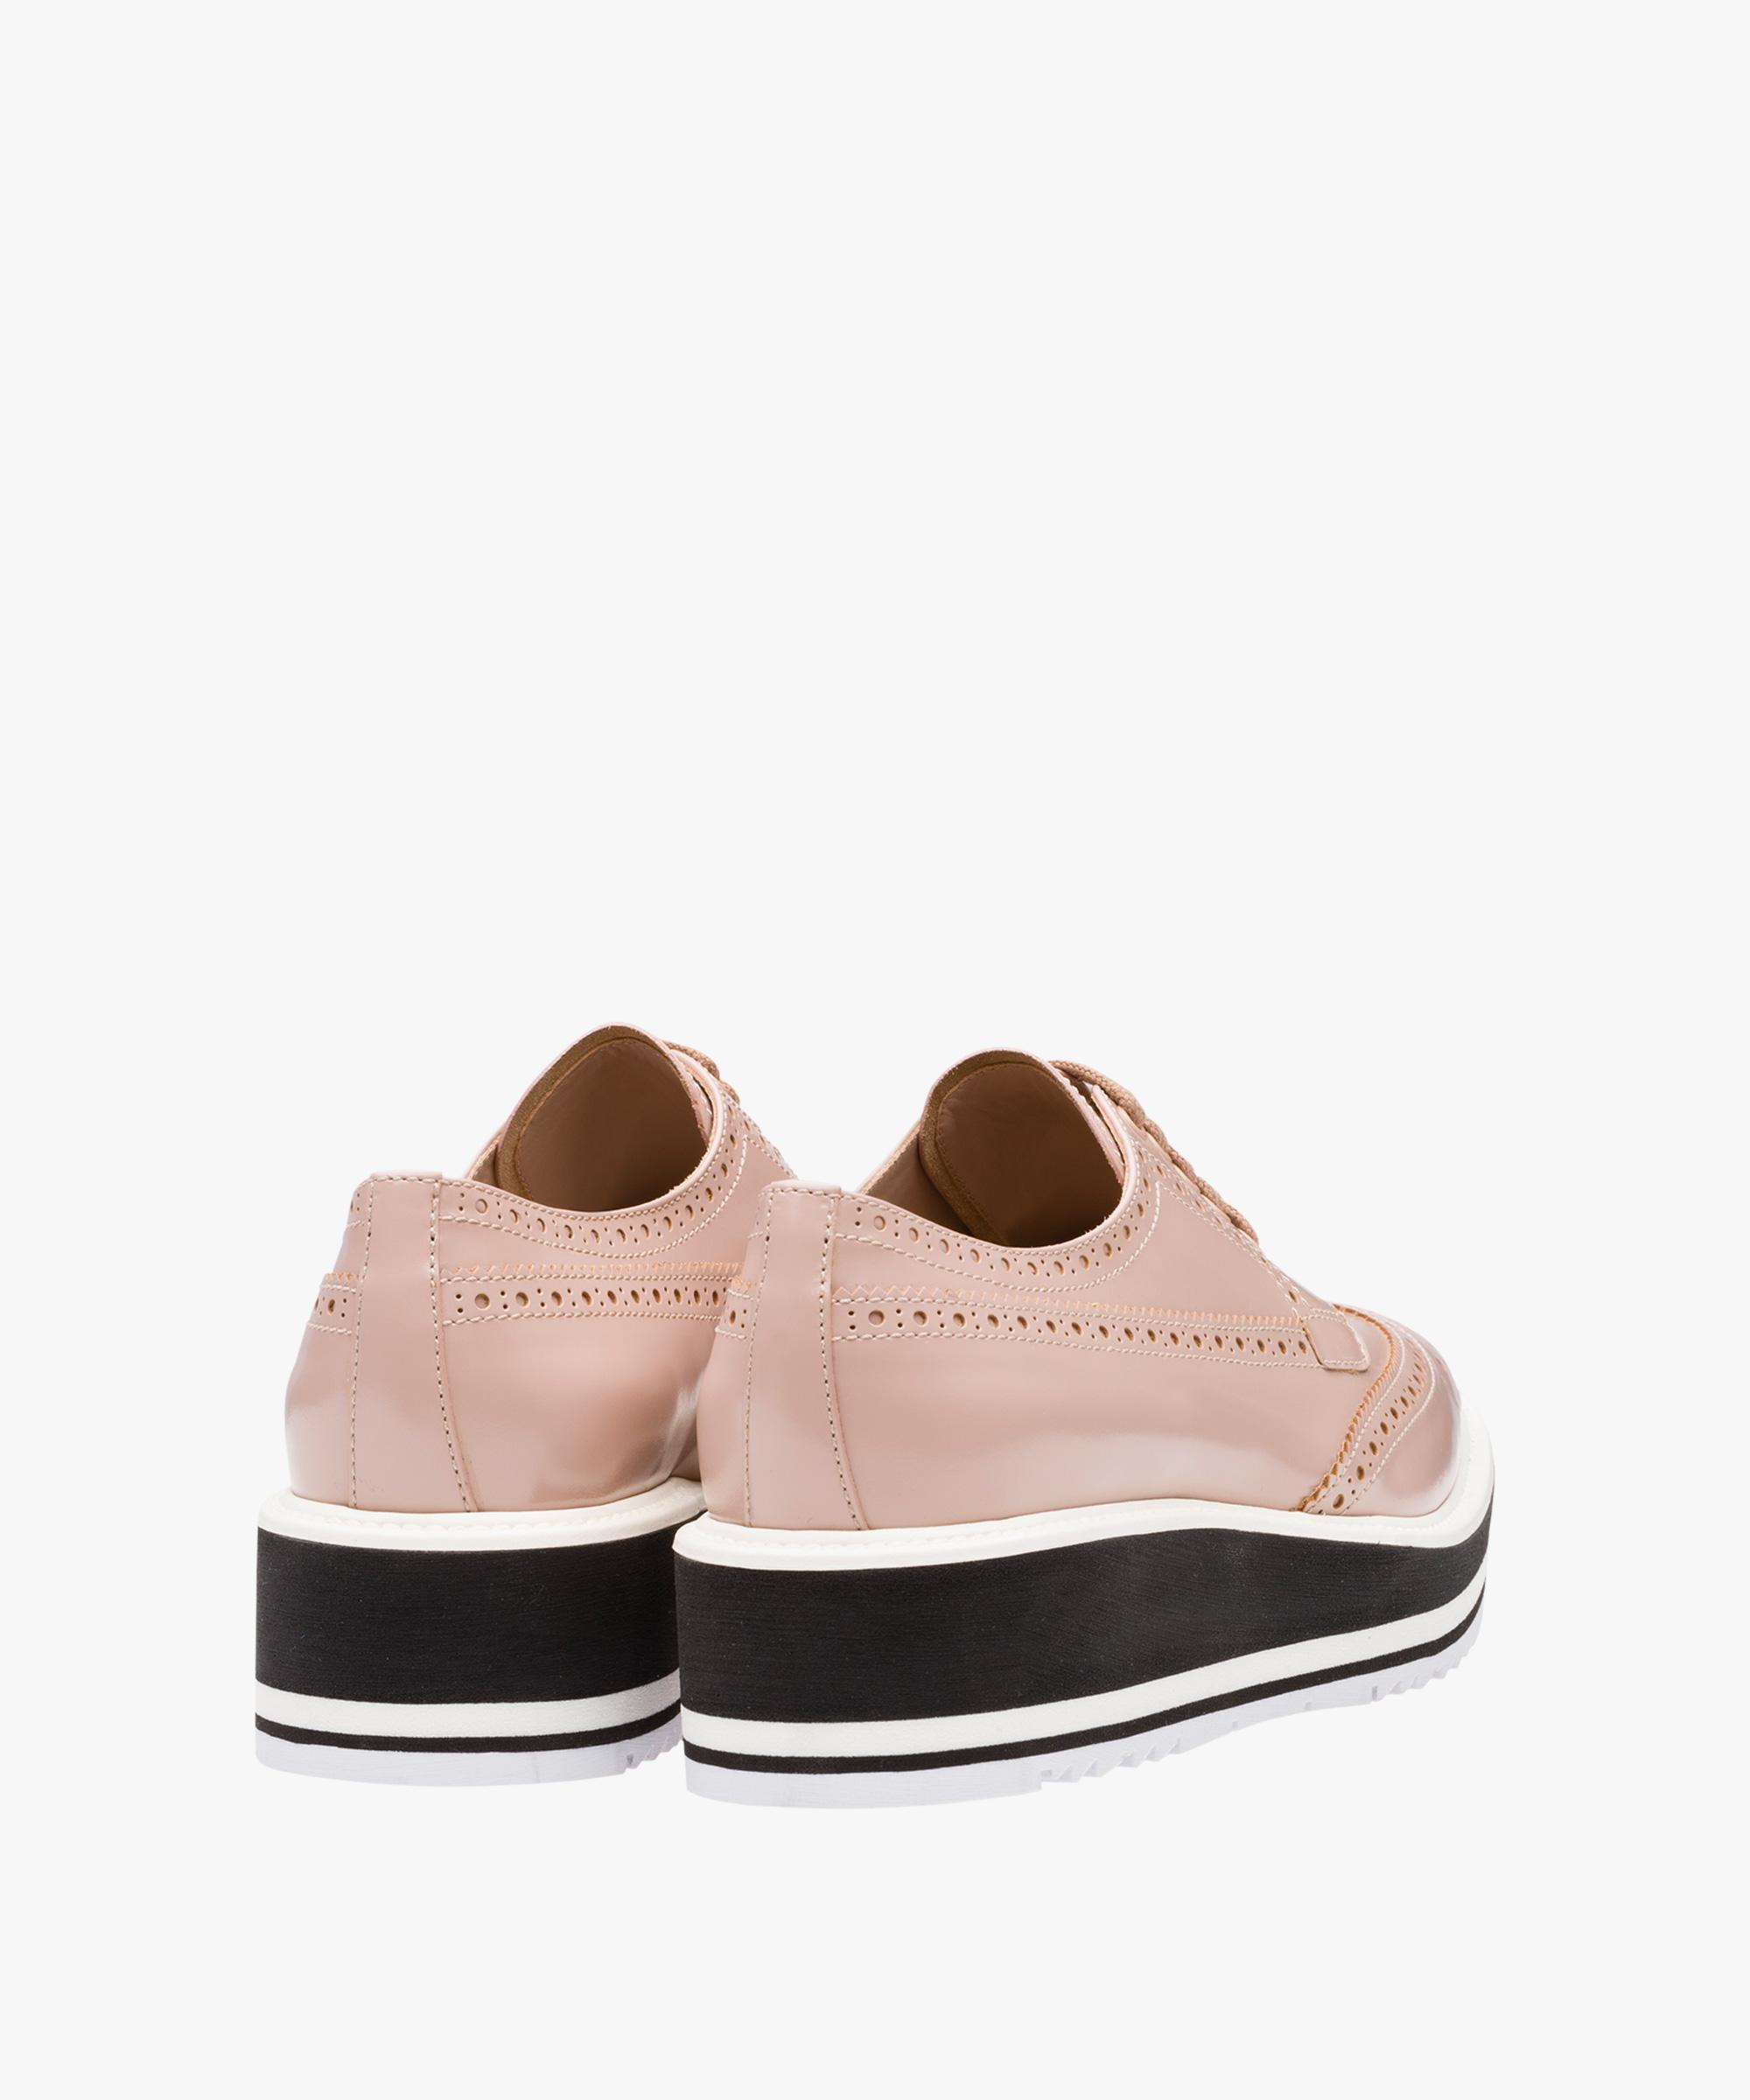 8705870d1f17 Lyst - Prada Leather Platform Derby Shoes in Pink